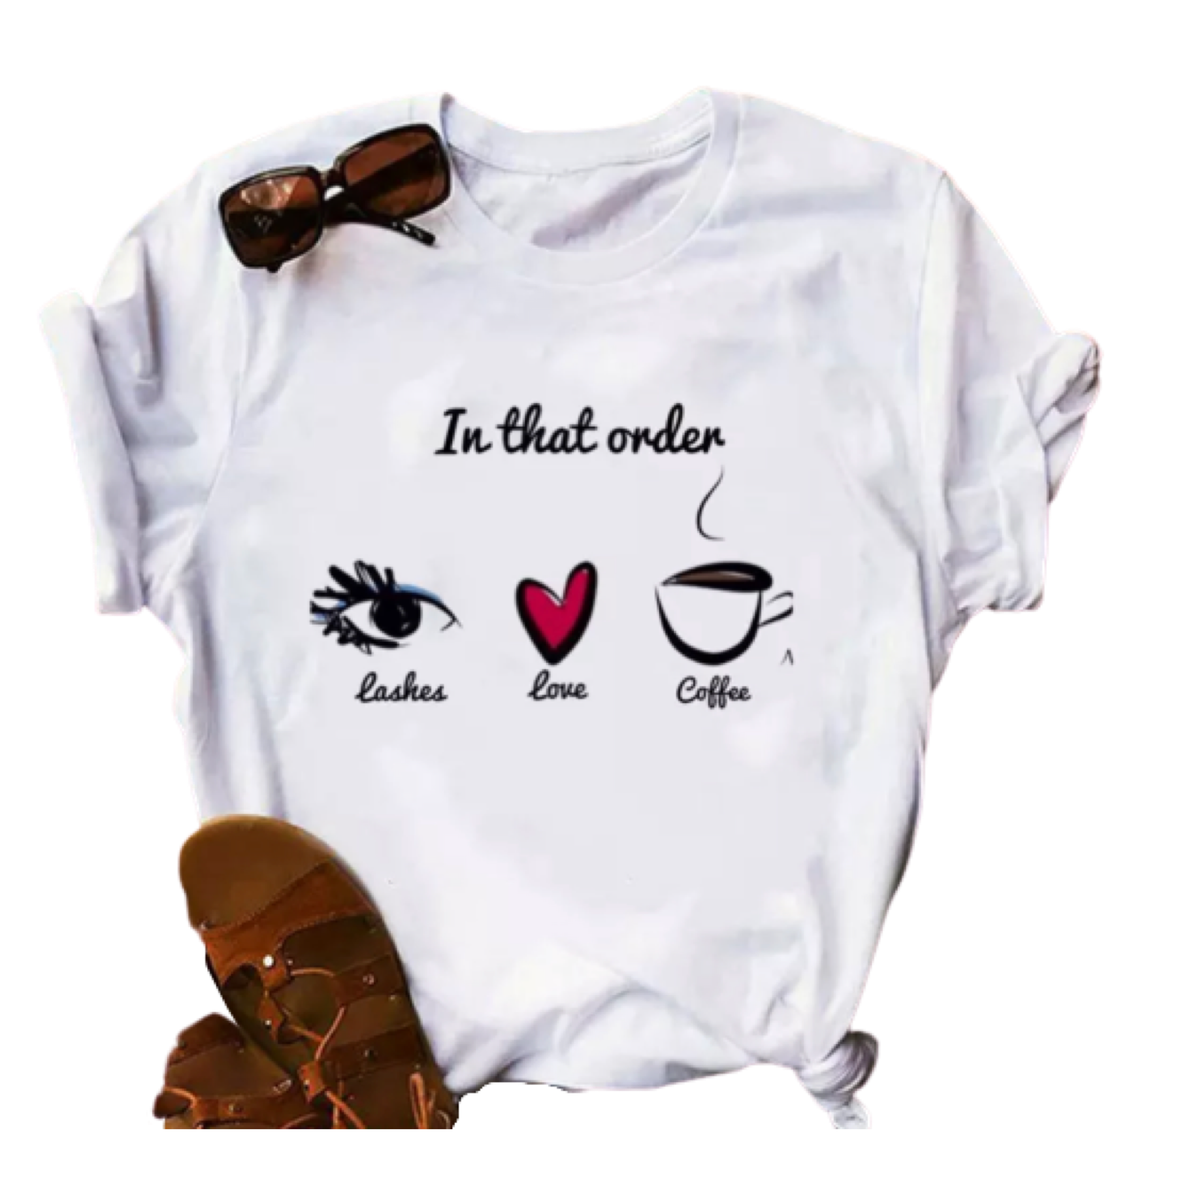 Lashes Coffee Love  T shirt